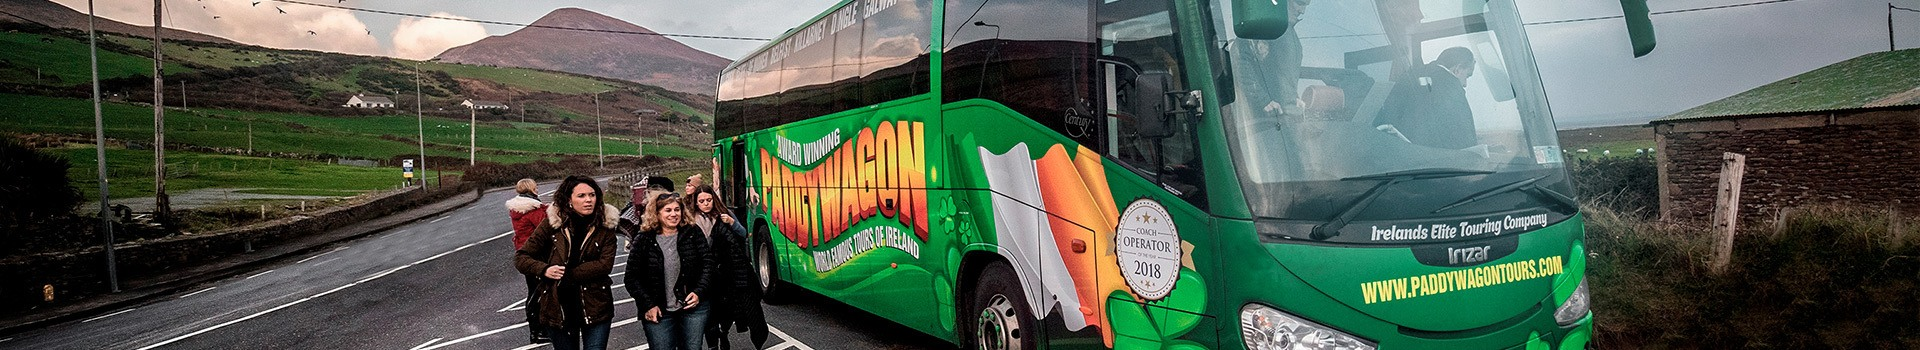 Discover Paddywagon Tours